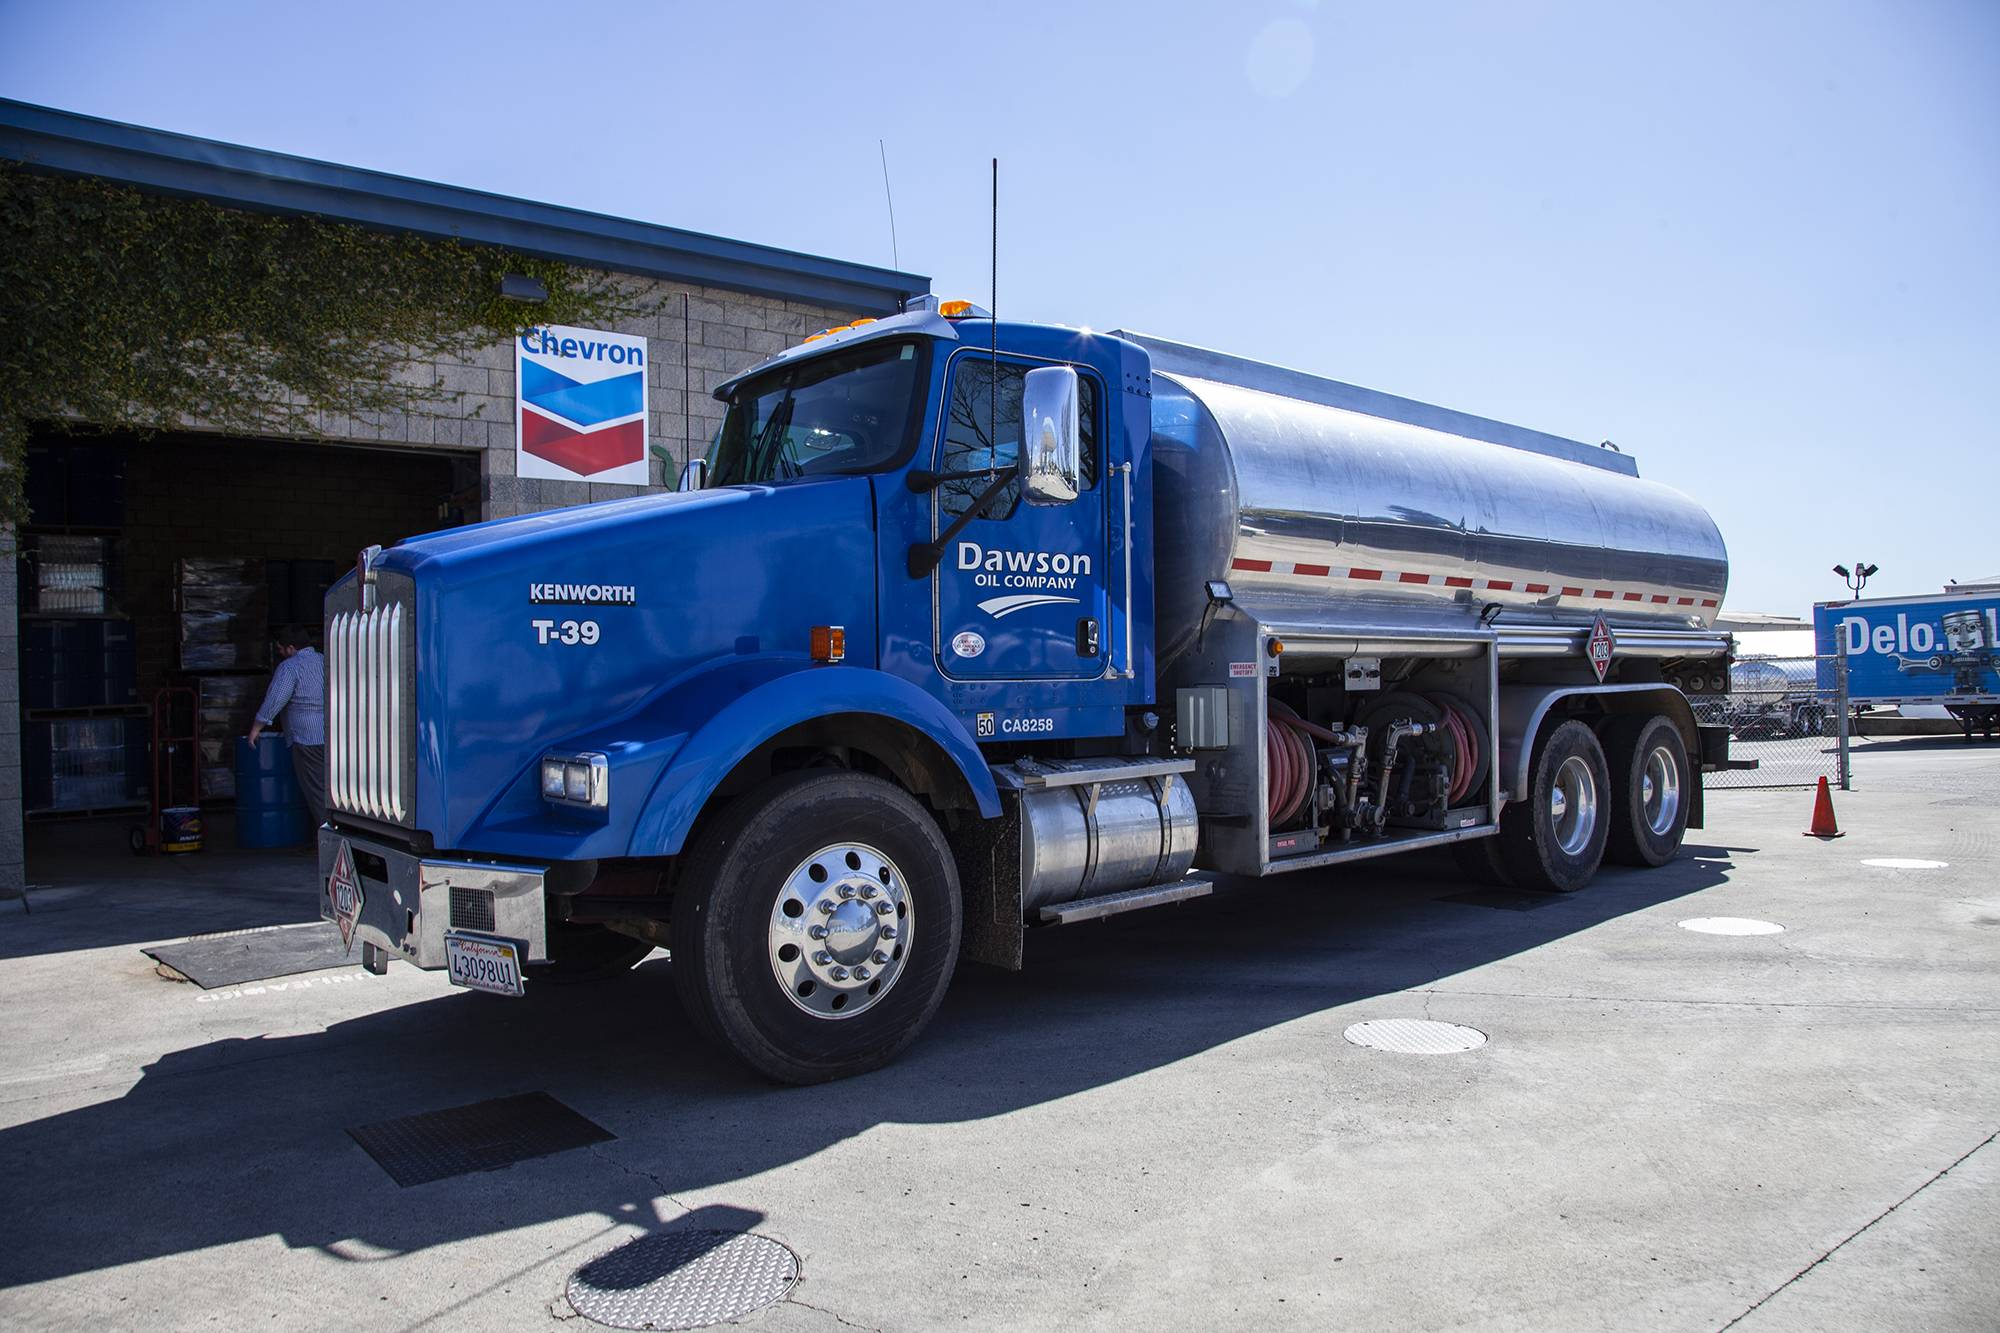 Our STLE-certified technicians can help you figure out what type of fuel you need and we'll deliver a variety of fuels within 24 hours of a phone call.